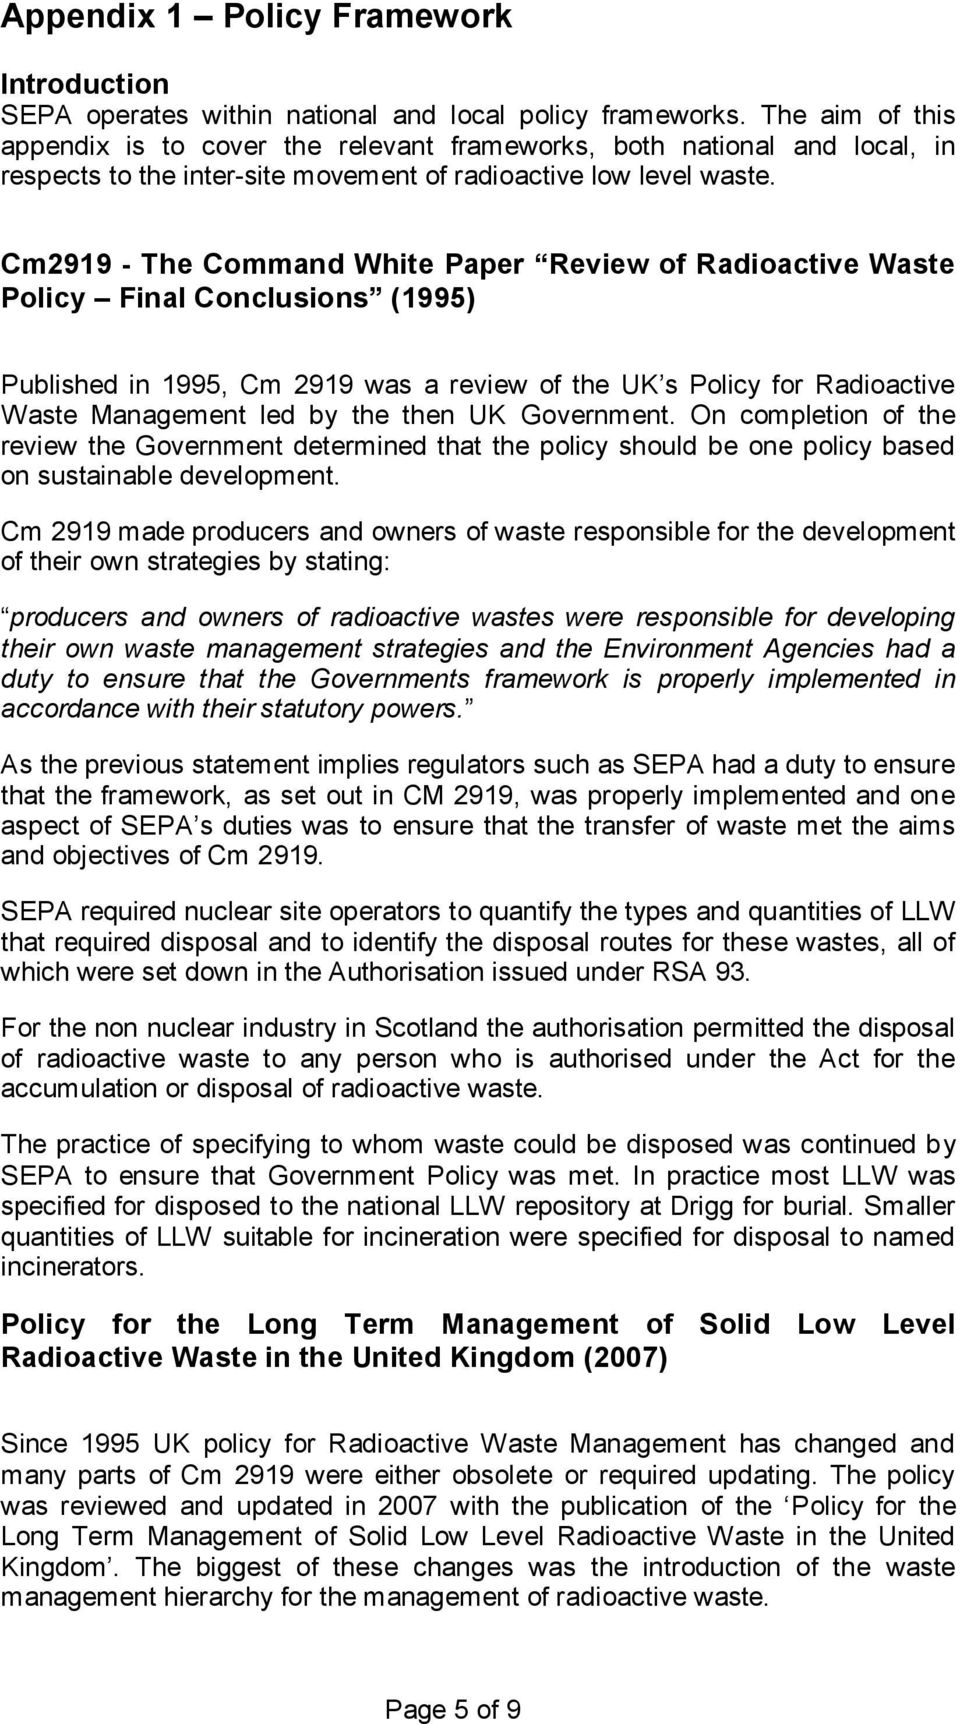 Cm2919 - The Command White Paper Review of Radioactive Waste Policy Final Conclusions (1995) Published in 1995, Cm 2919 was a review of the UK s Policy for Radioactive Waste Management led by the